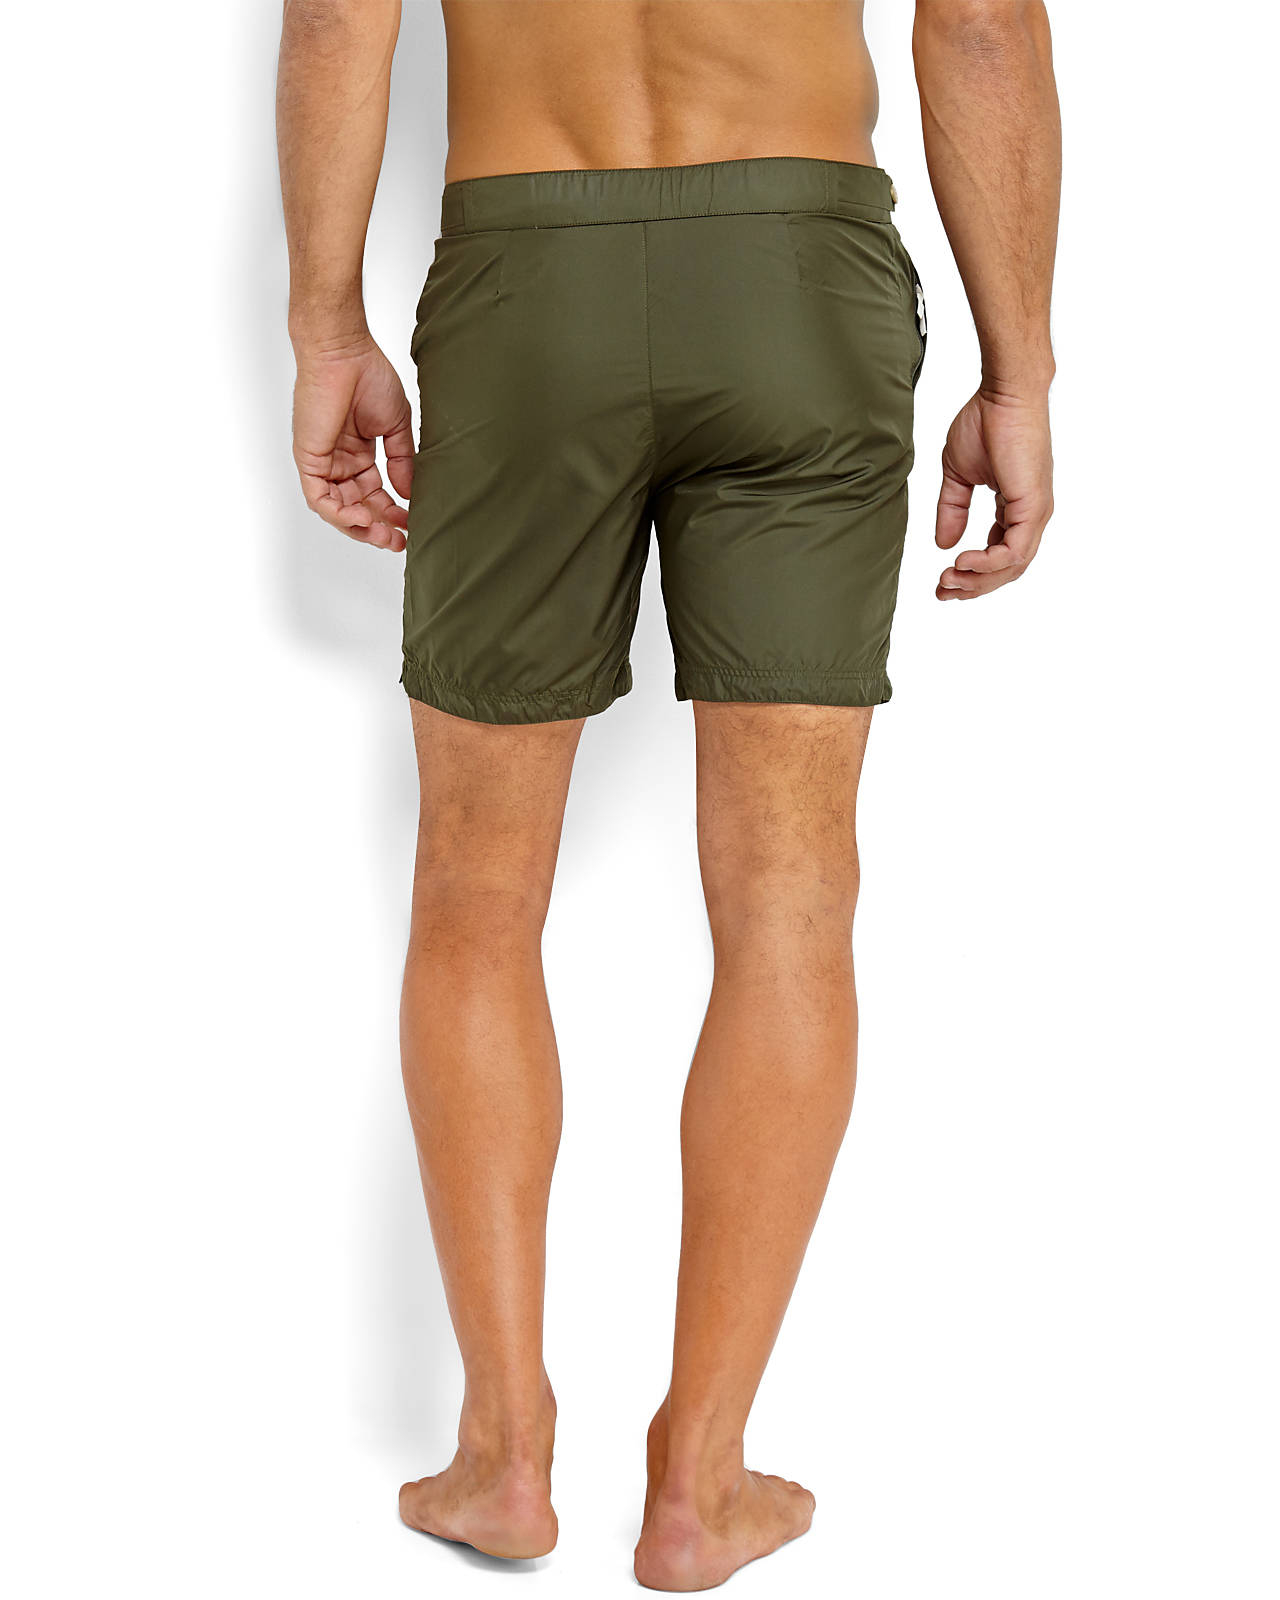 34c0c340108ac Robinson Les Bains Olive Tech Swim Trunks in Green for Men - Lyst